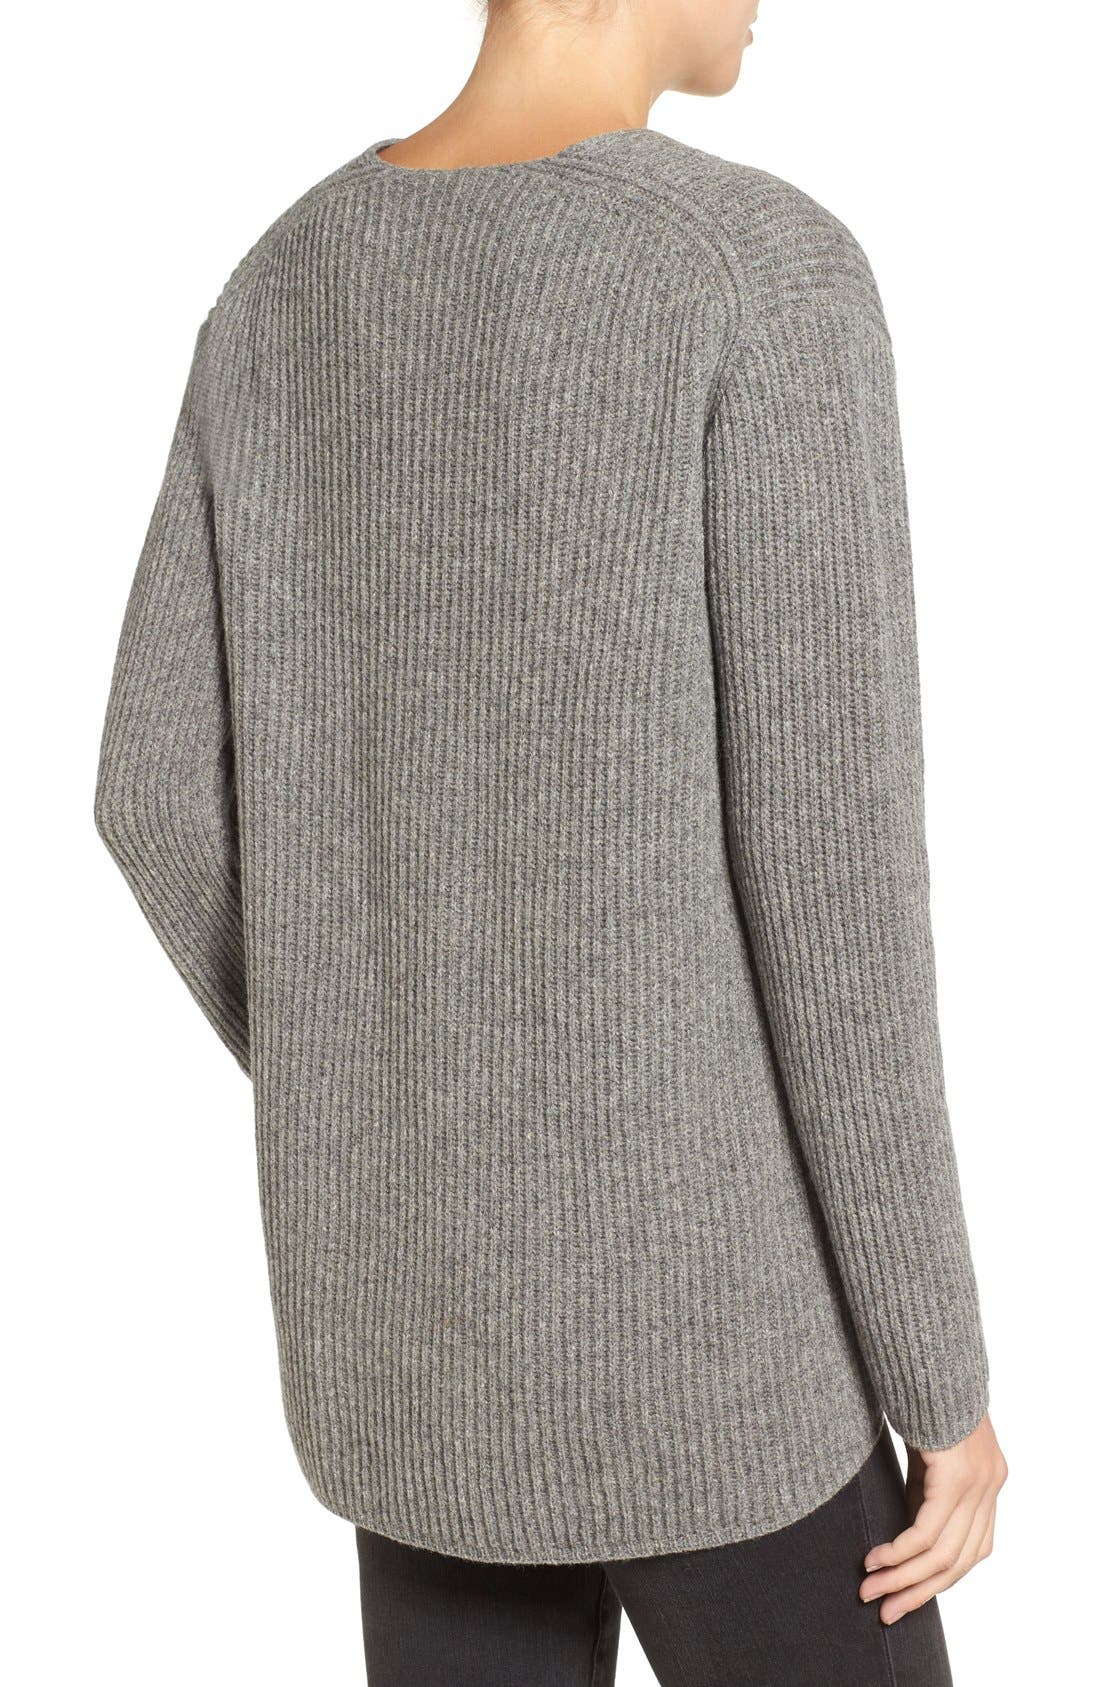 Woodside Pullover Sweater,                             Alternate thumbnail 26, color,